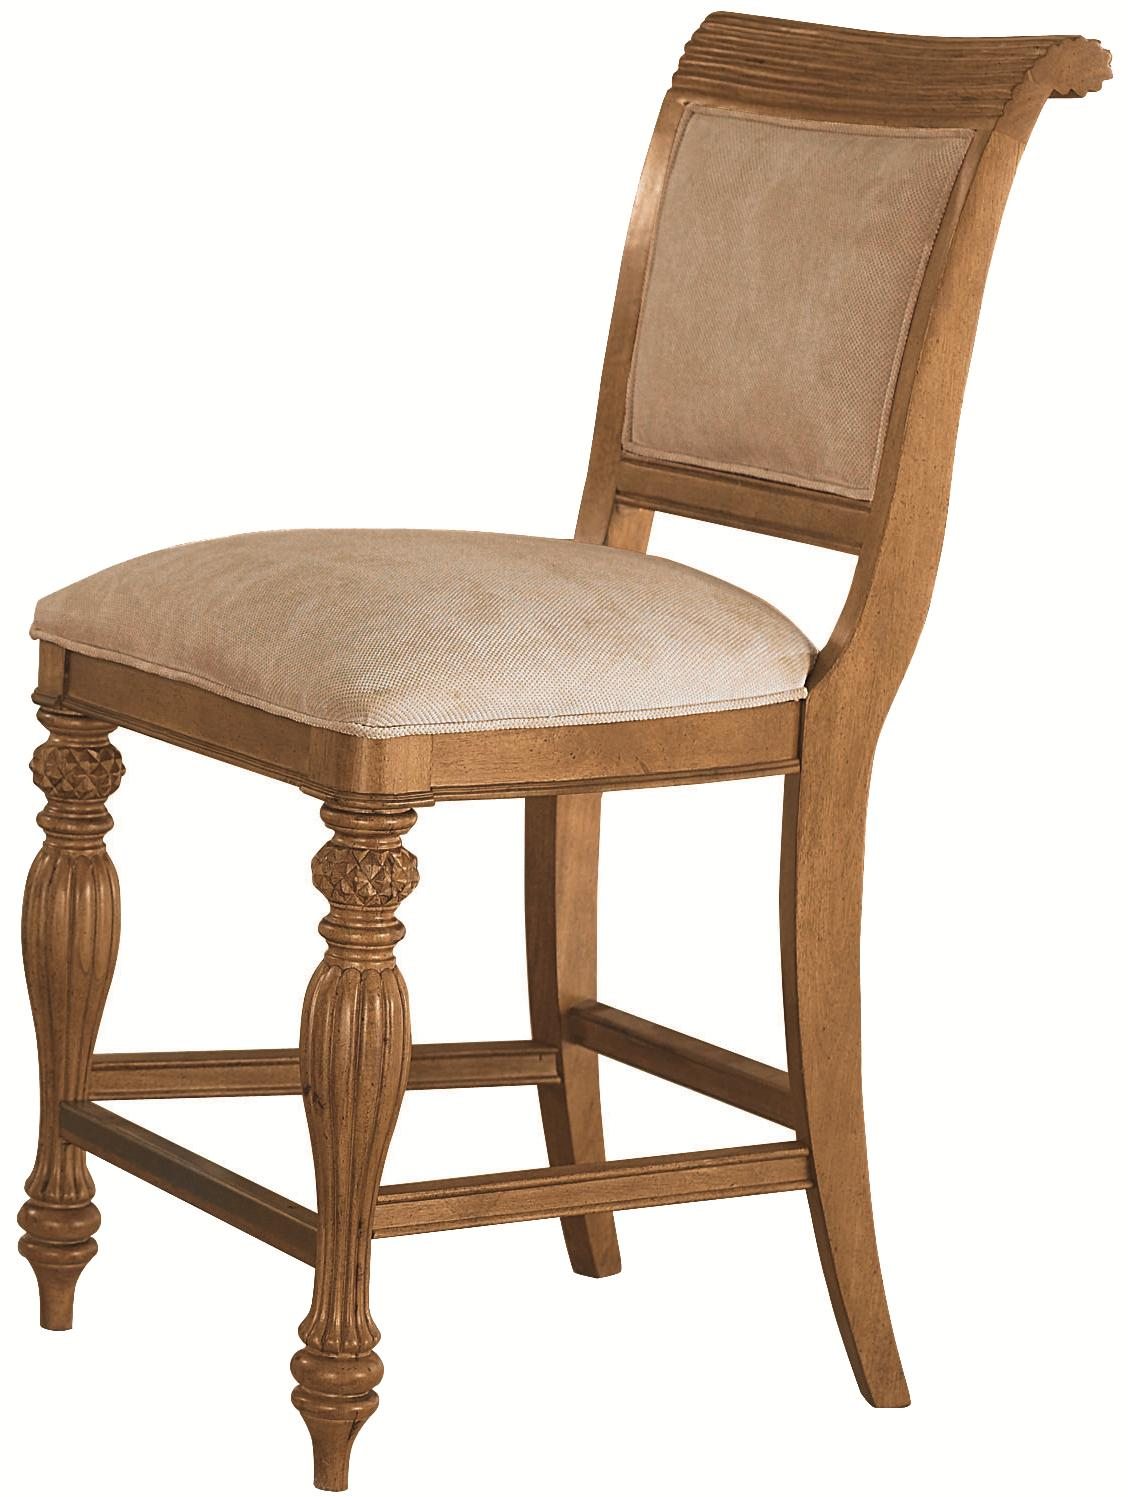 American Drew Grand Isle Counter Height Barstool - Item Number: 079-690